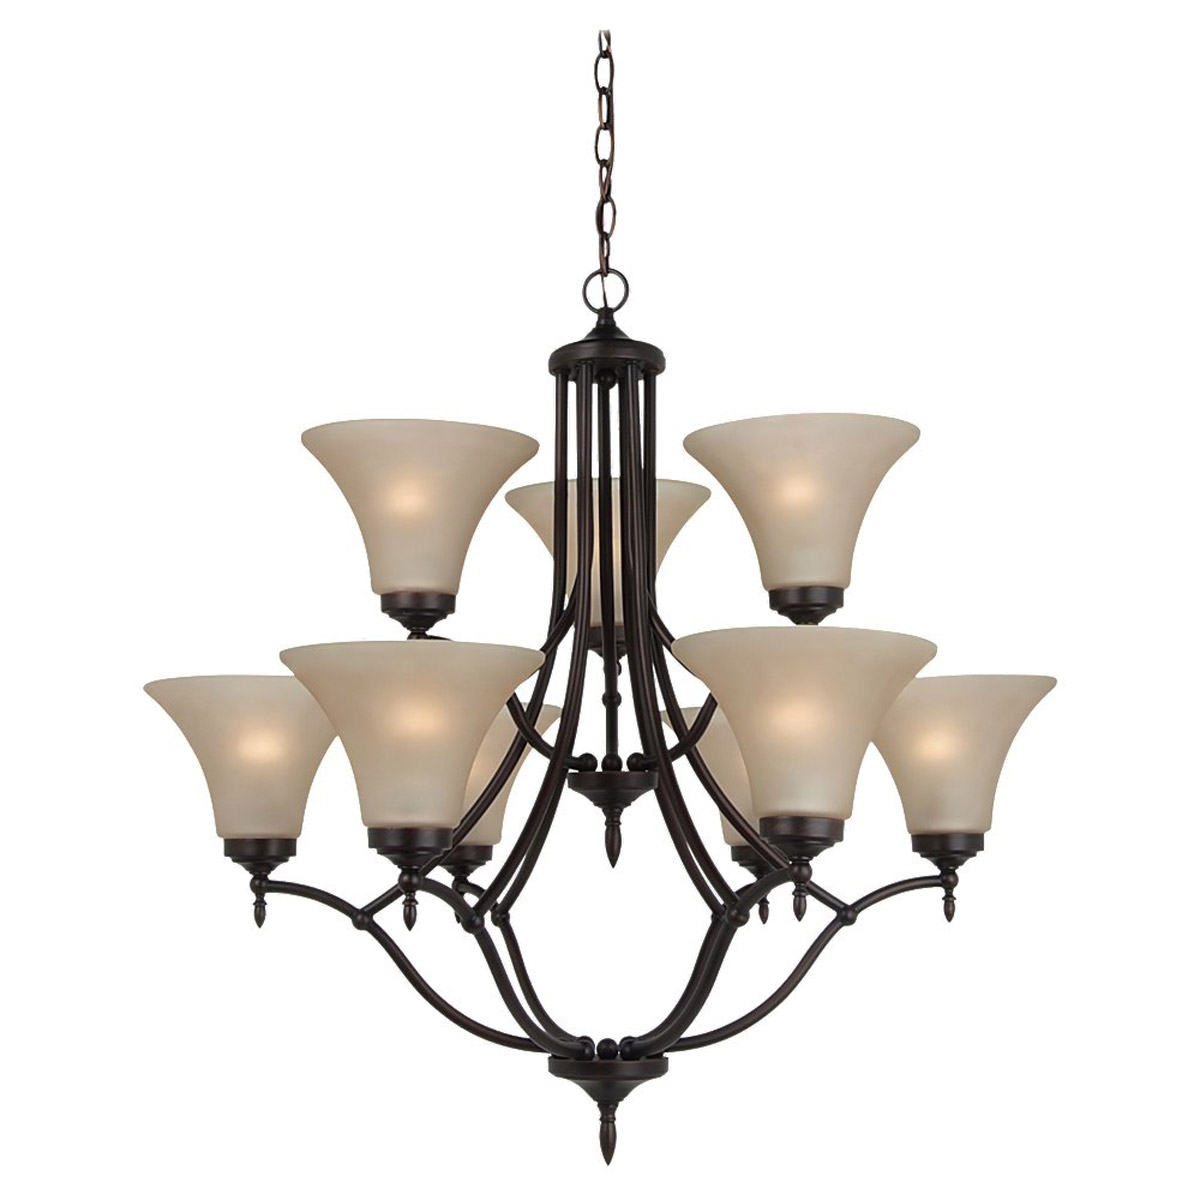 Sea Gull Lighting Montreal 9 Light Chandelier in Burnt Sienna 31182BLE-710 photo